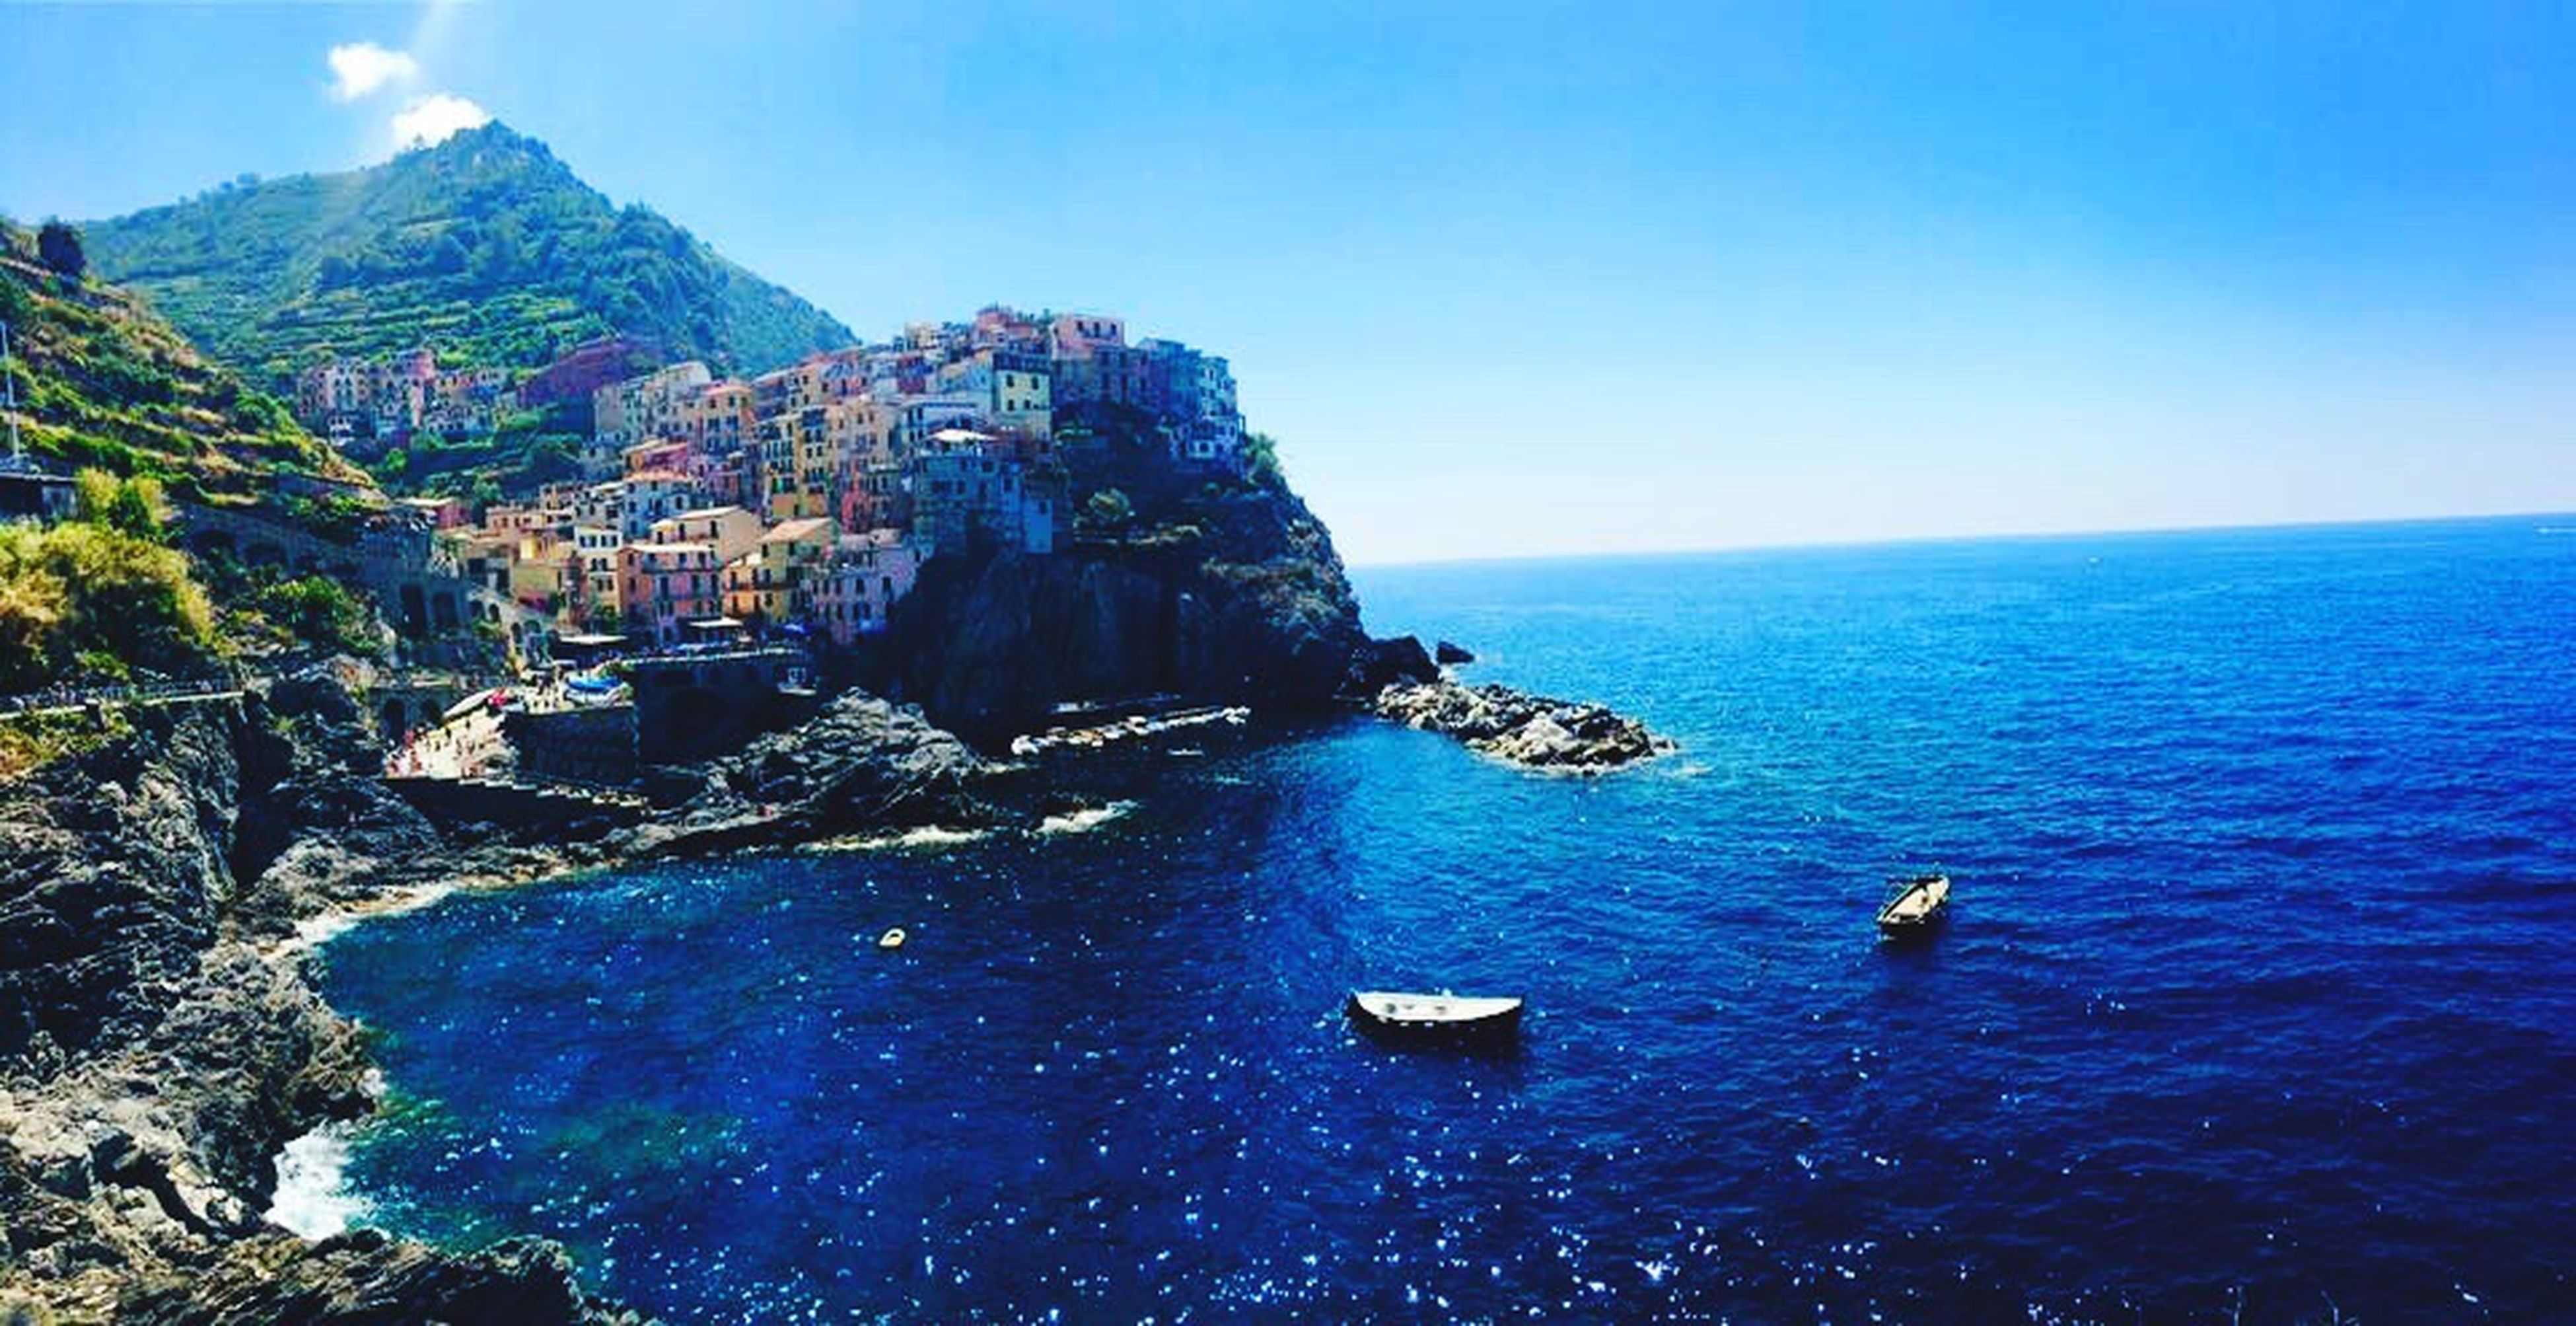 blue, water, sea, nautical vessel, built structure, architecture, clear sky, high angle view, tranquil scene, scenics, building exterior, cliff, beauty in nature, nature, tranquility, rippled, rock formation, mountain, travel destinations, day, outdoors, town, waterfront, tourism, sky, coastline, famous place, no people